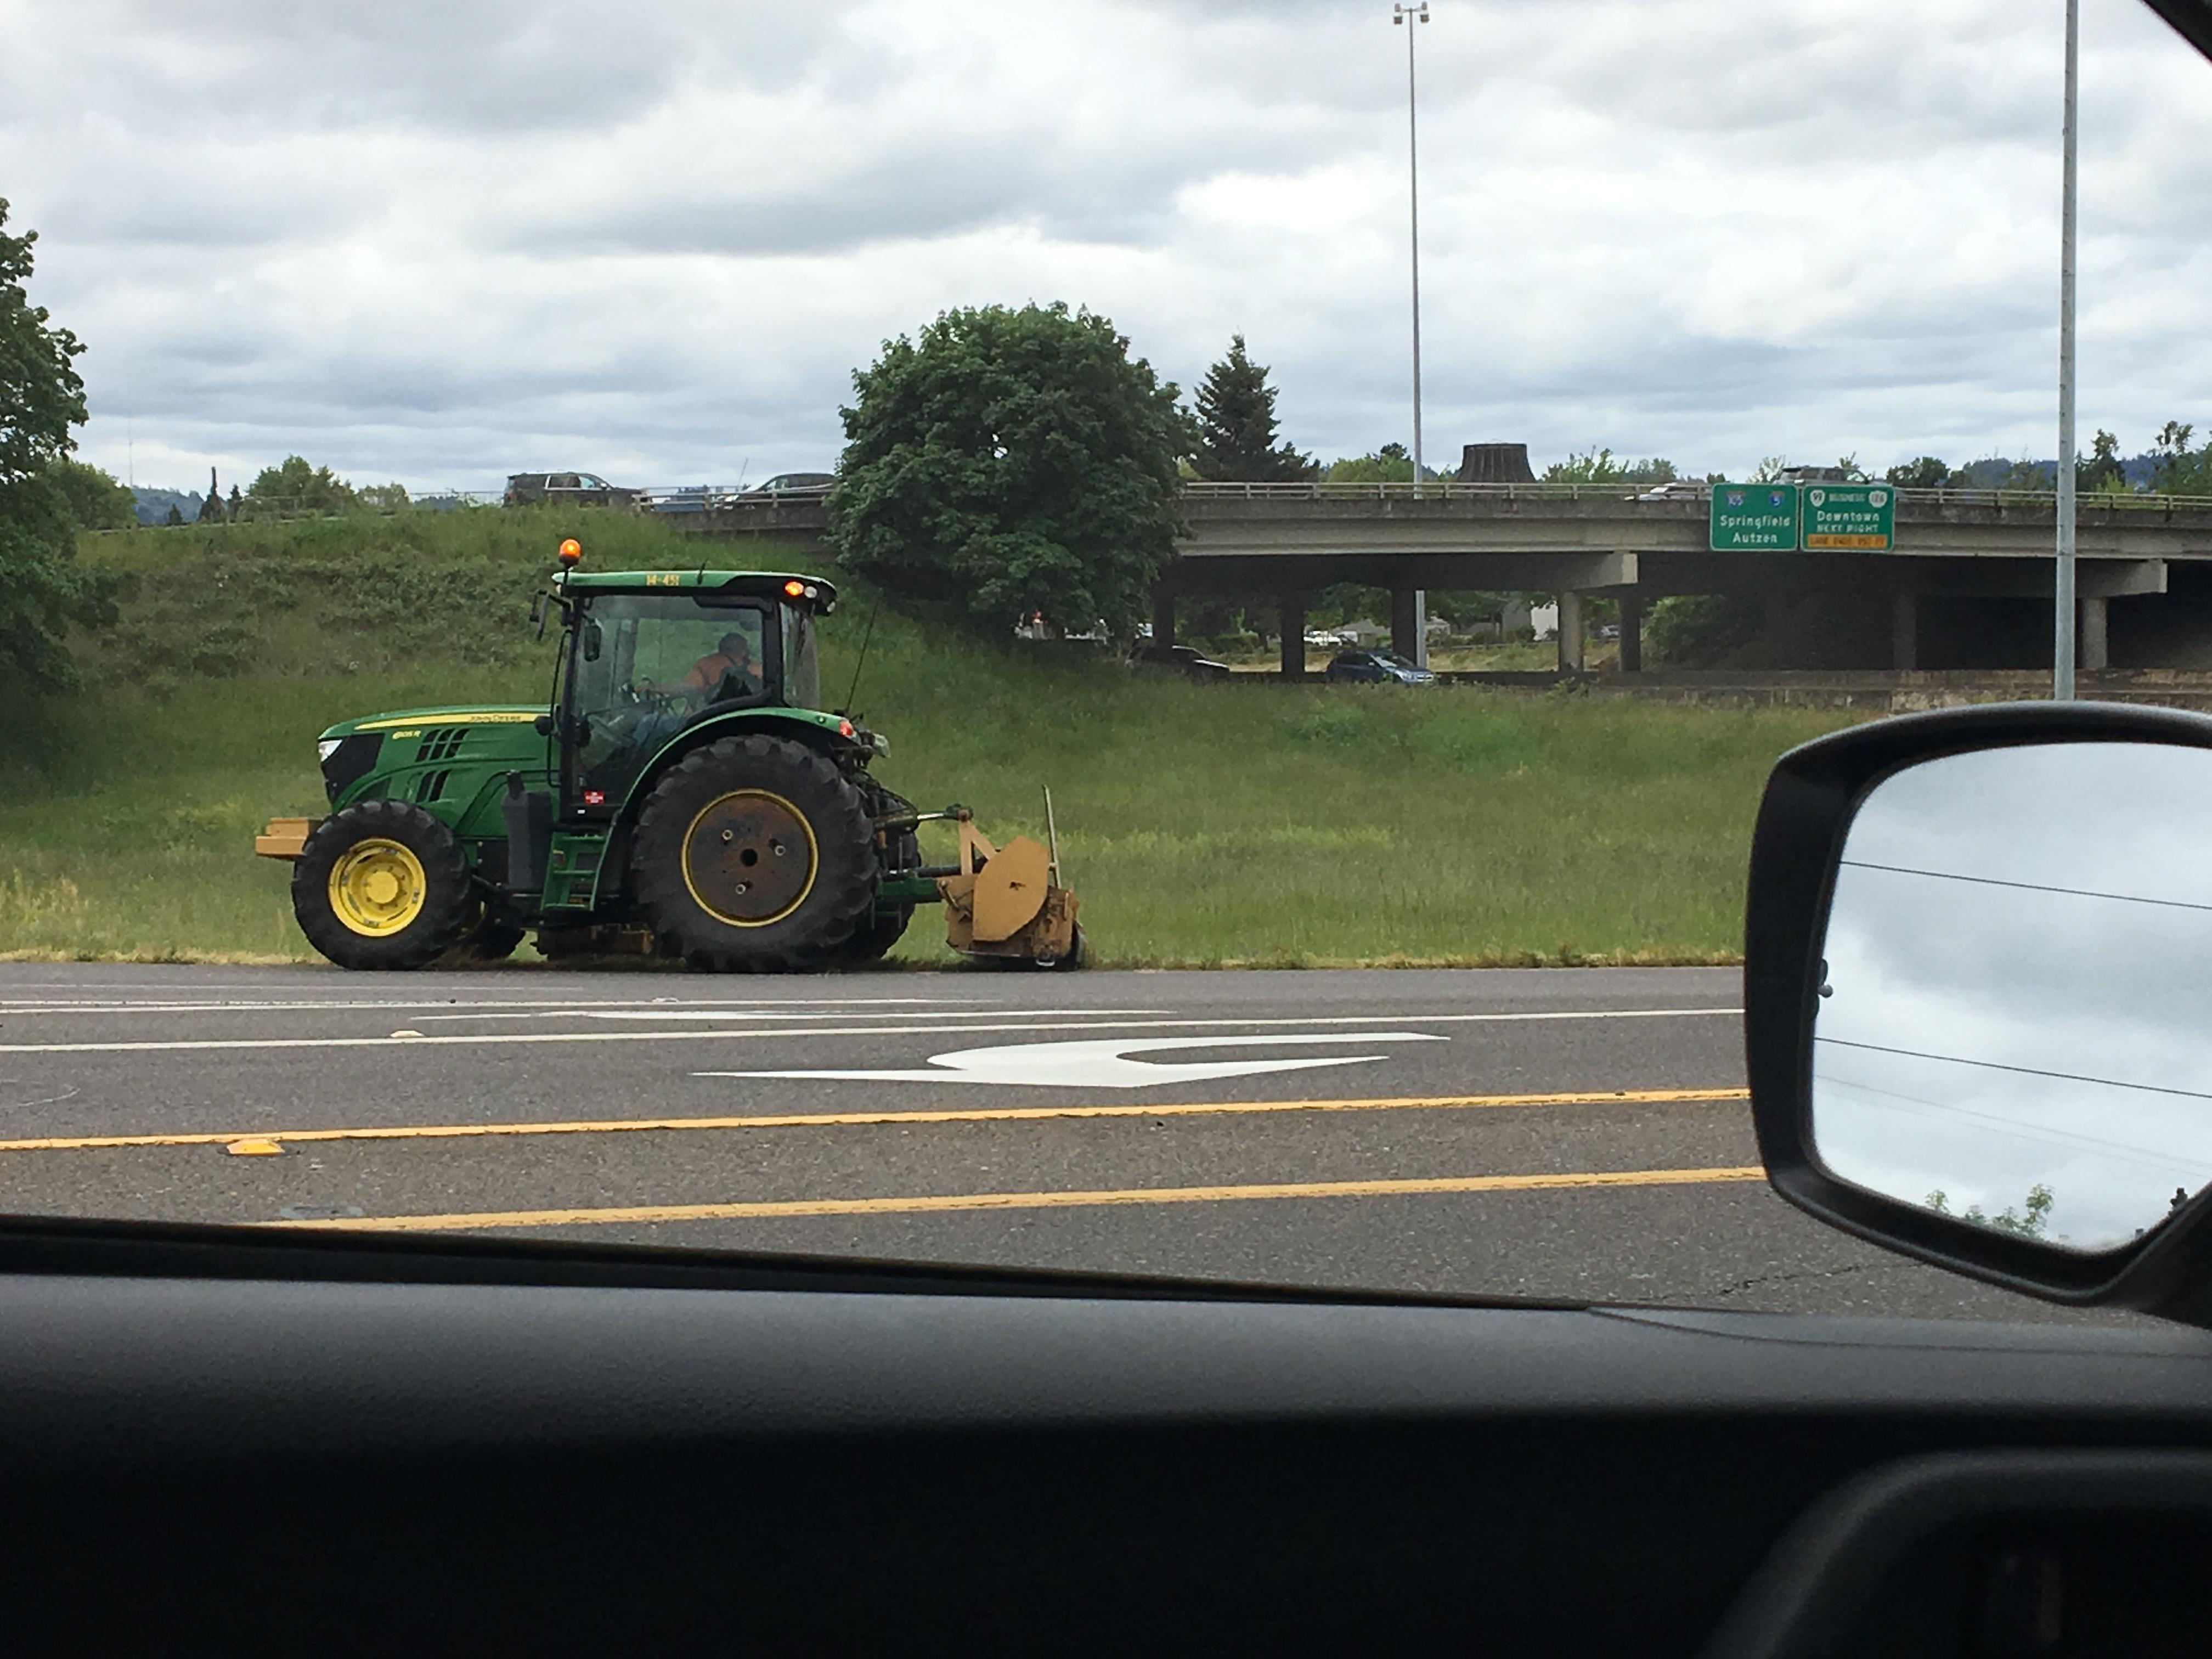 It's mowing season for Lane County crews who are out and about clearing rights of way and ditches. (SBG).